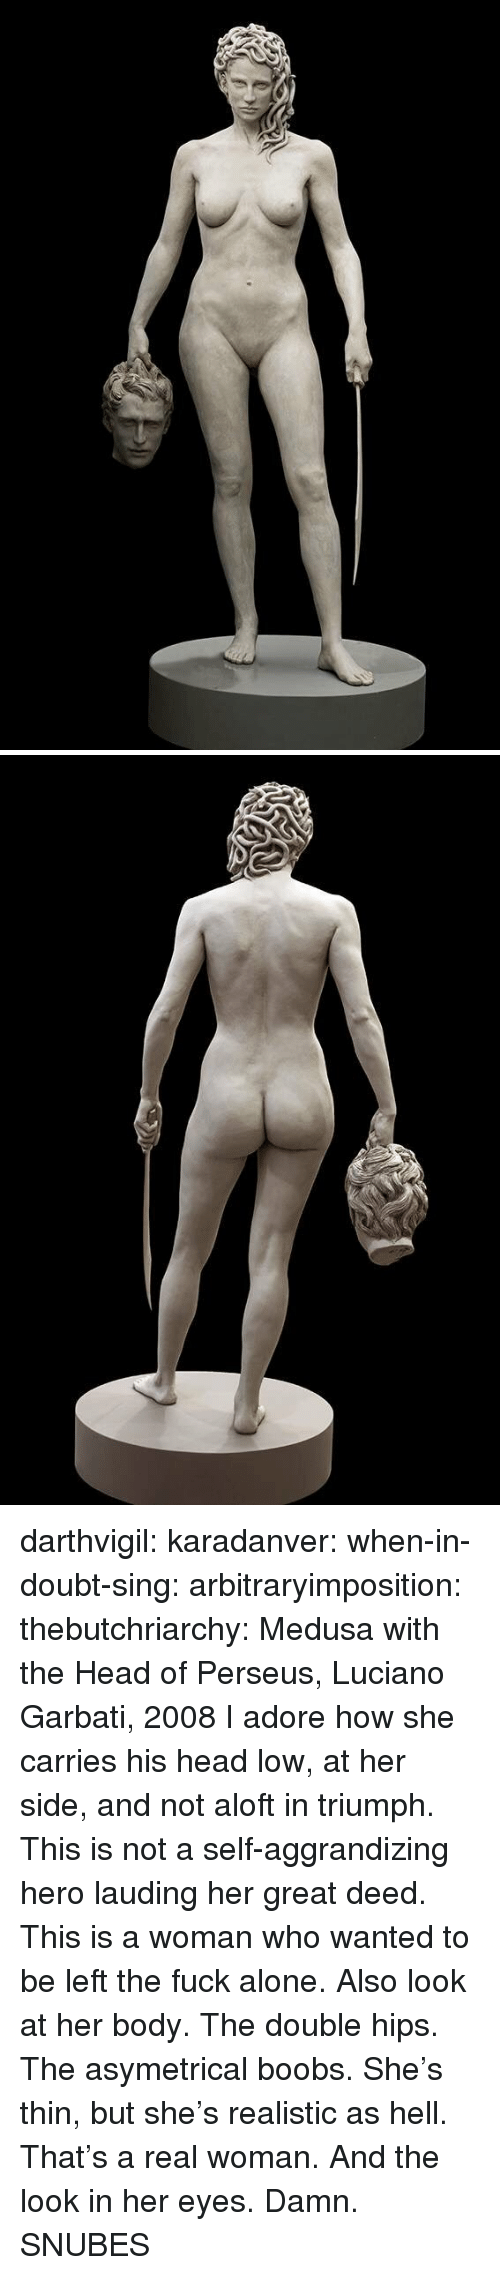 A Real Woman: darthvigil: karadanver:  when-in-doubt-sing:  arbitraryimposition:  thebutchriarchy: Medusa with the Head of Perseus, Luciano Garbati, 2008 I adore how she carries his head low, at her side, and not aloft in triumph.  This is not a self-aggrandizing hero lauding her great deed. This is a woman who wanted to be left the fuck alone.   Also look at her body. The double hips. The asymetrical boobs. She's thin, but she's realistic as hell. That's a real woman.  And the look in her eyes. Damn.      SNUBES